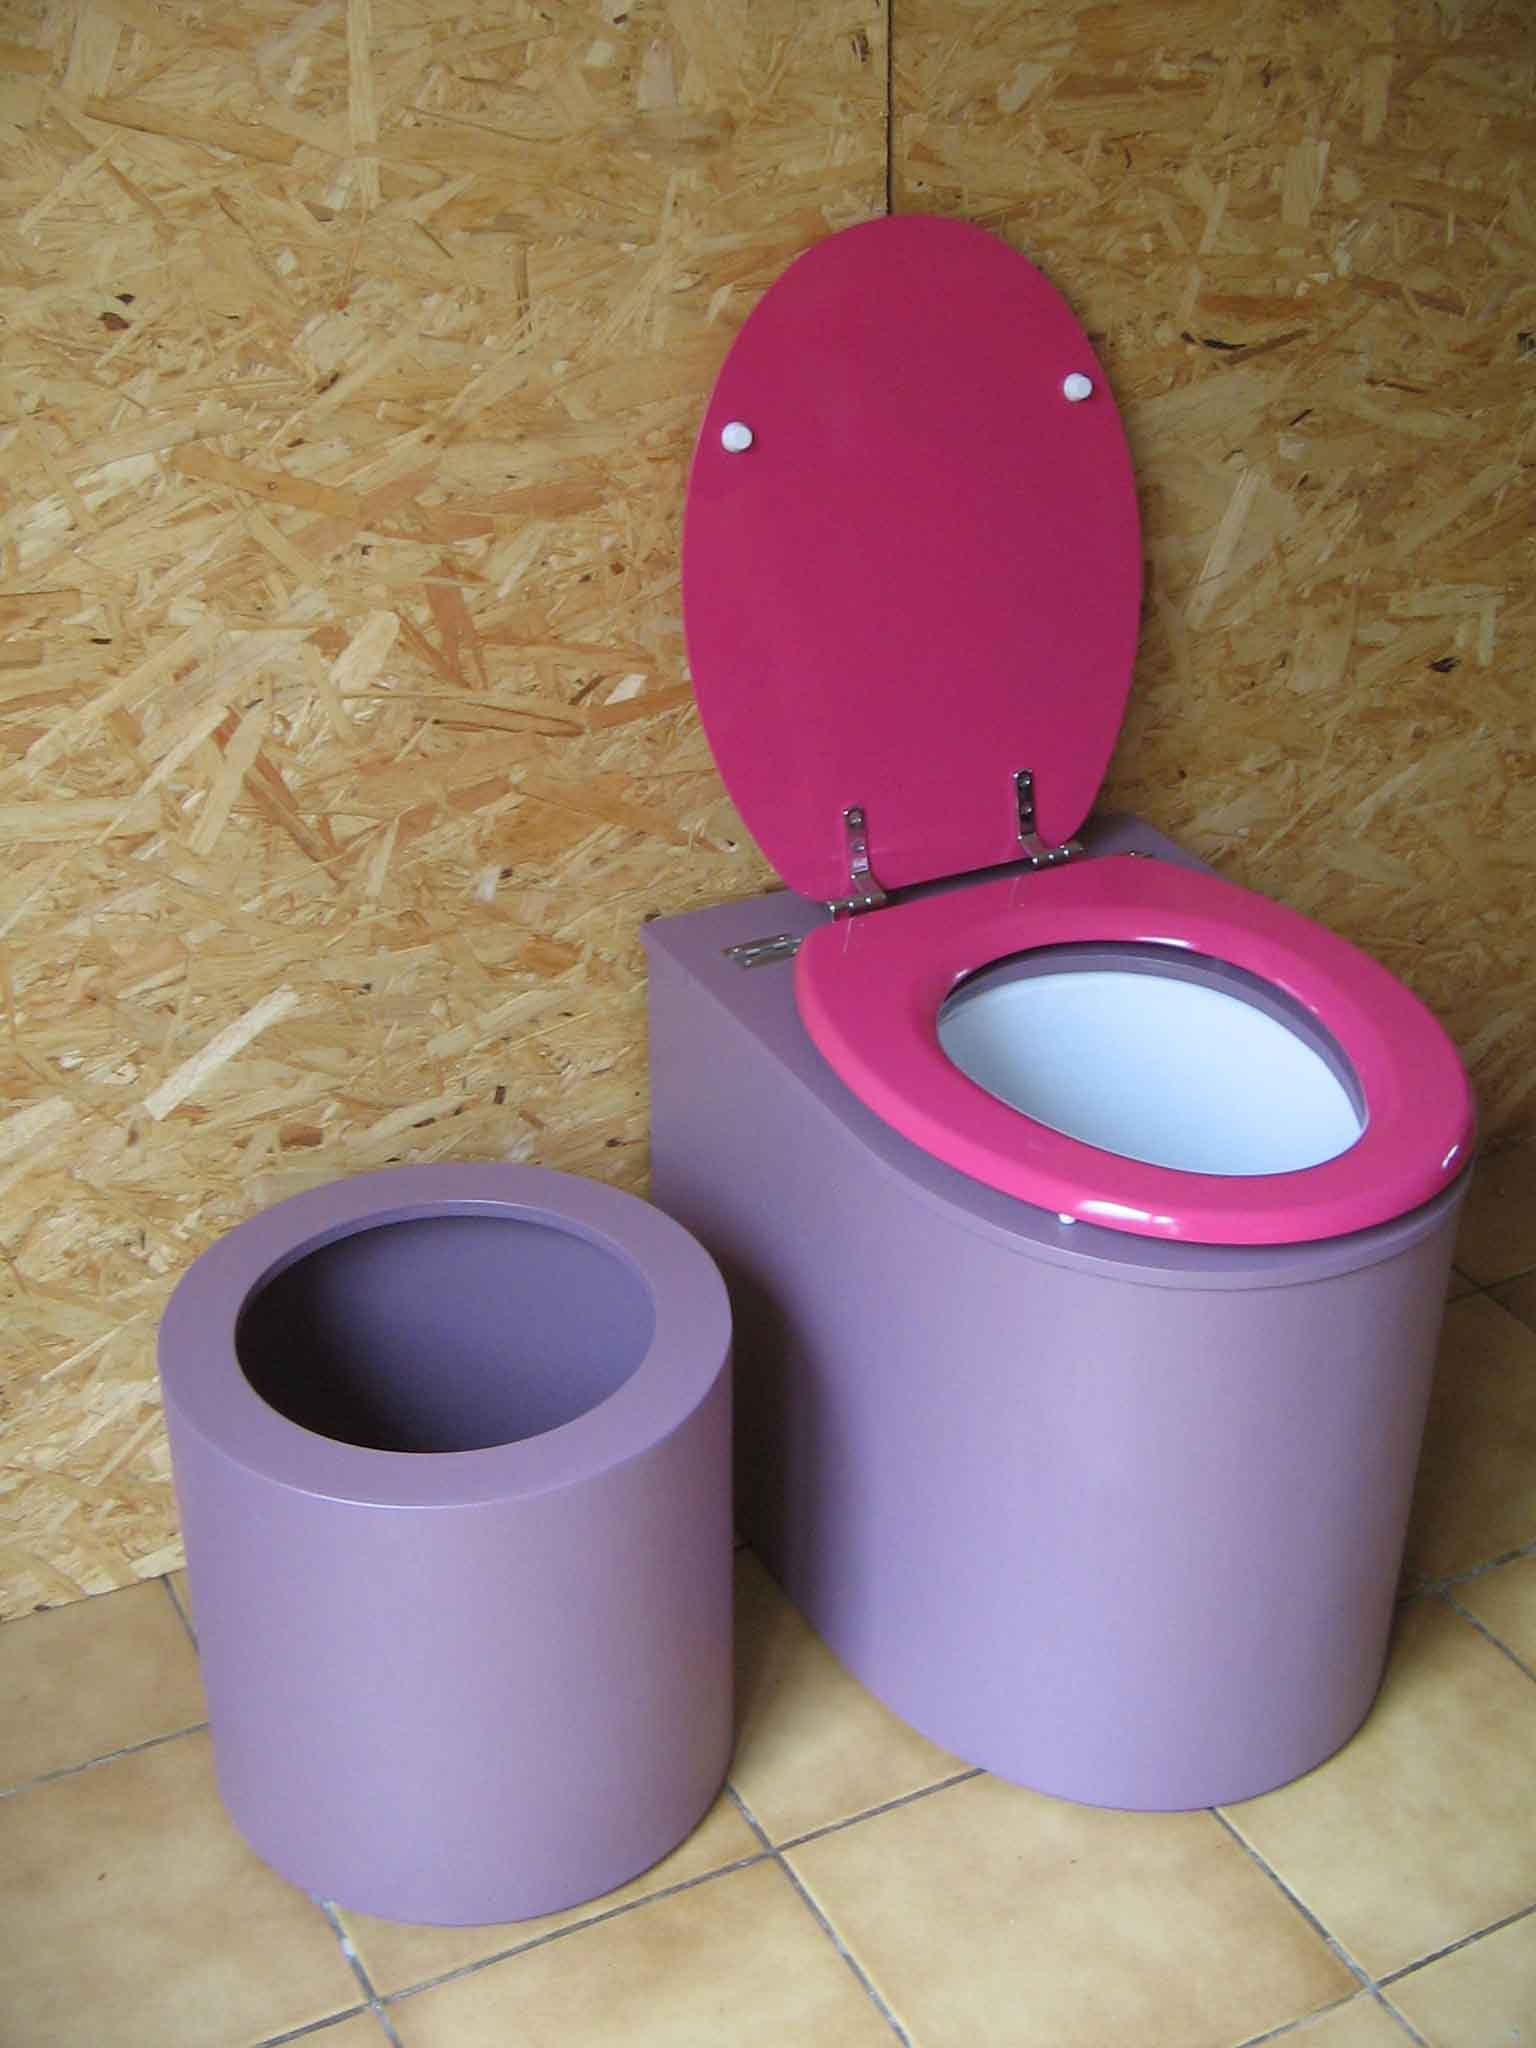 Toilette sèche en appartement violette